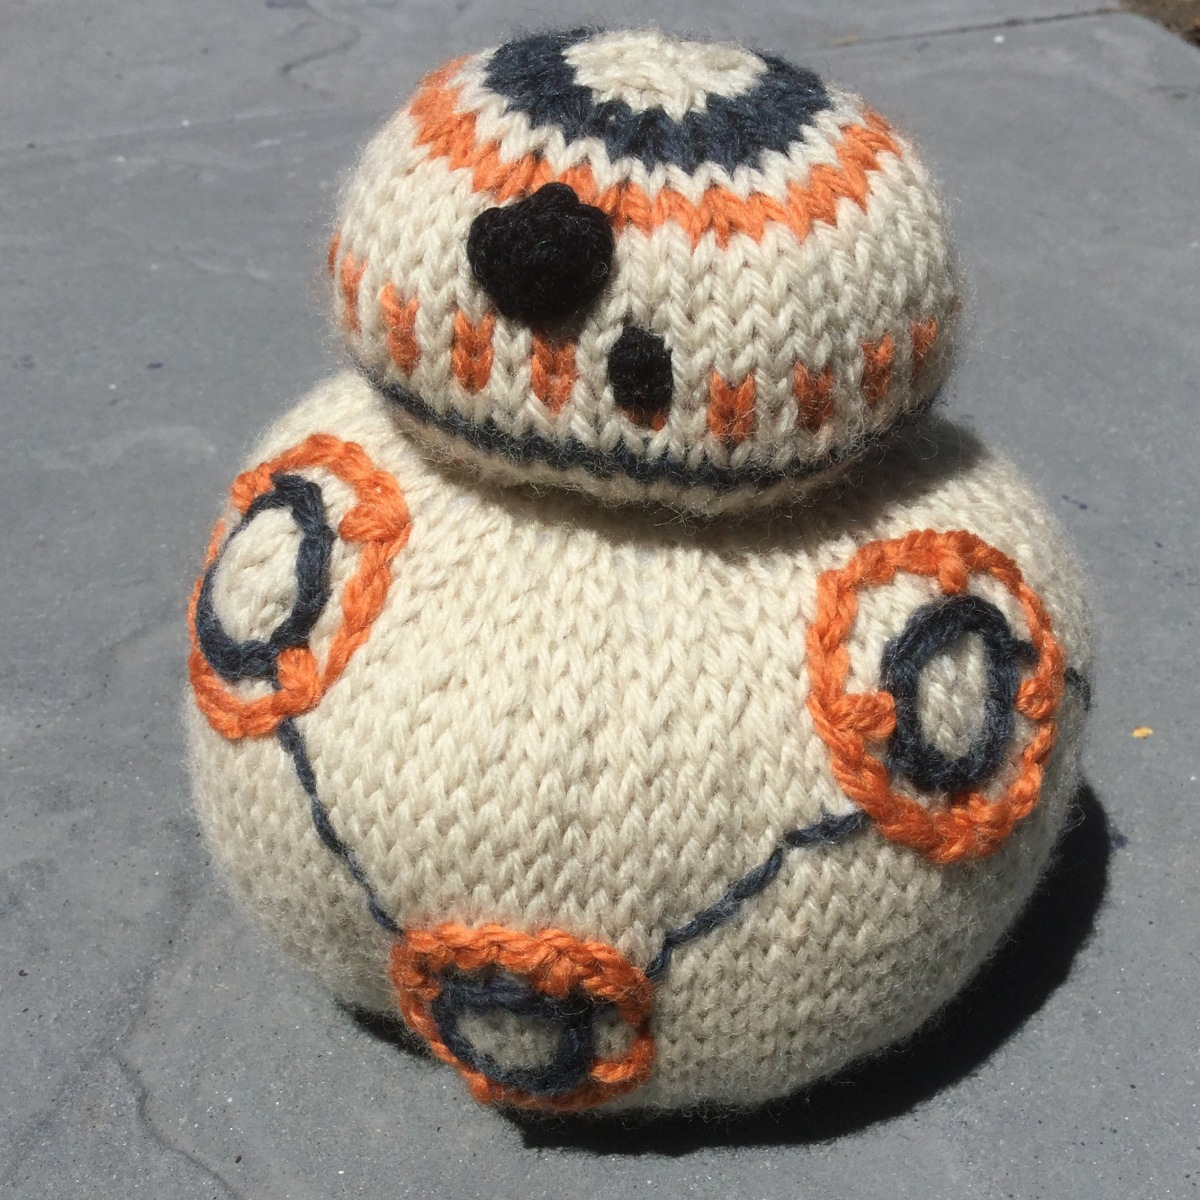 Free Crochet Star Wars Doll Patterns : BB-8 Knitting Pattern from ?Star Wars: The Force Awakens ...